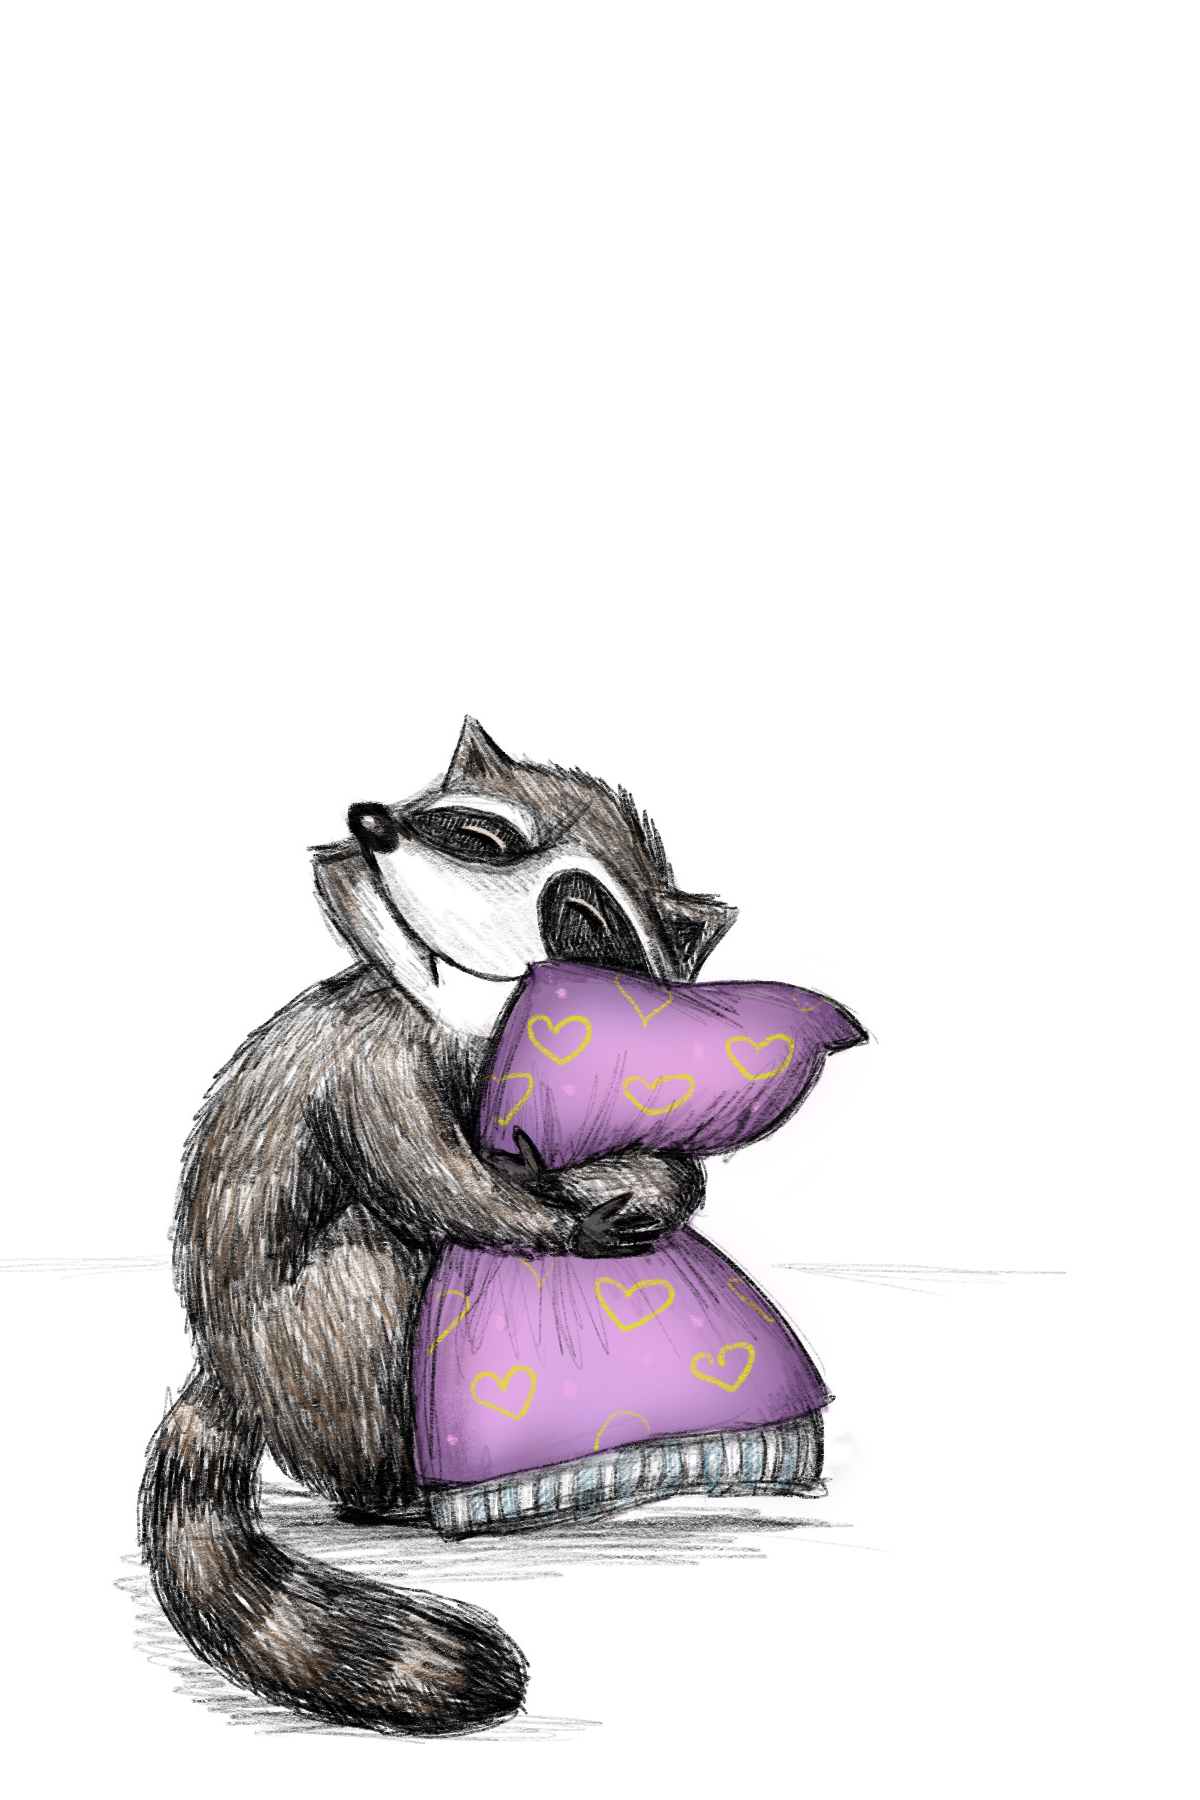 I love you, pillow